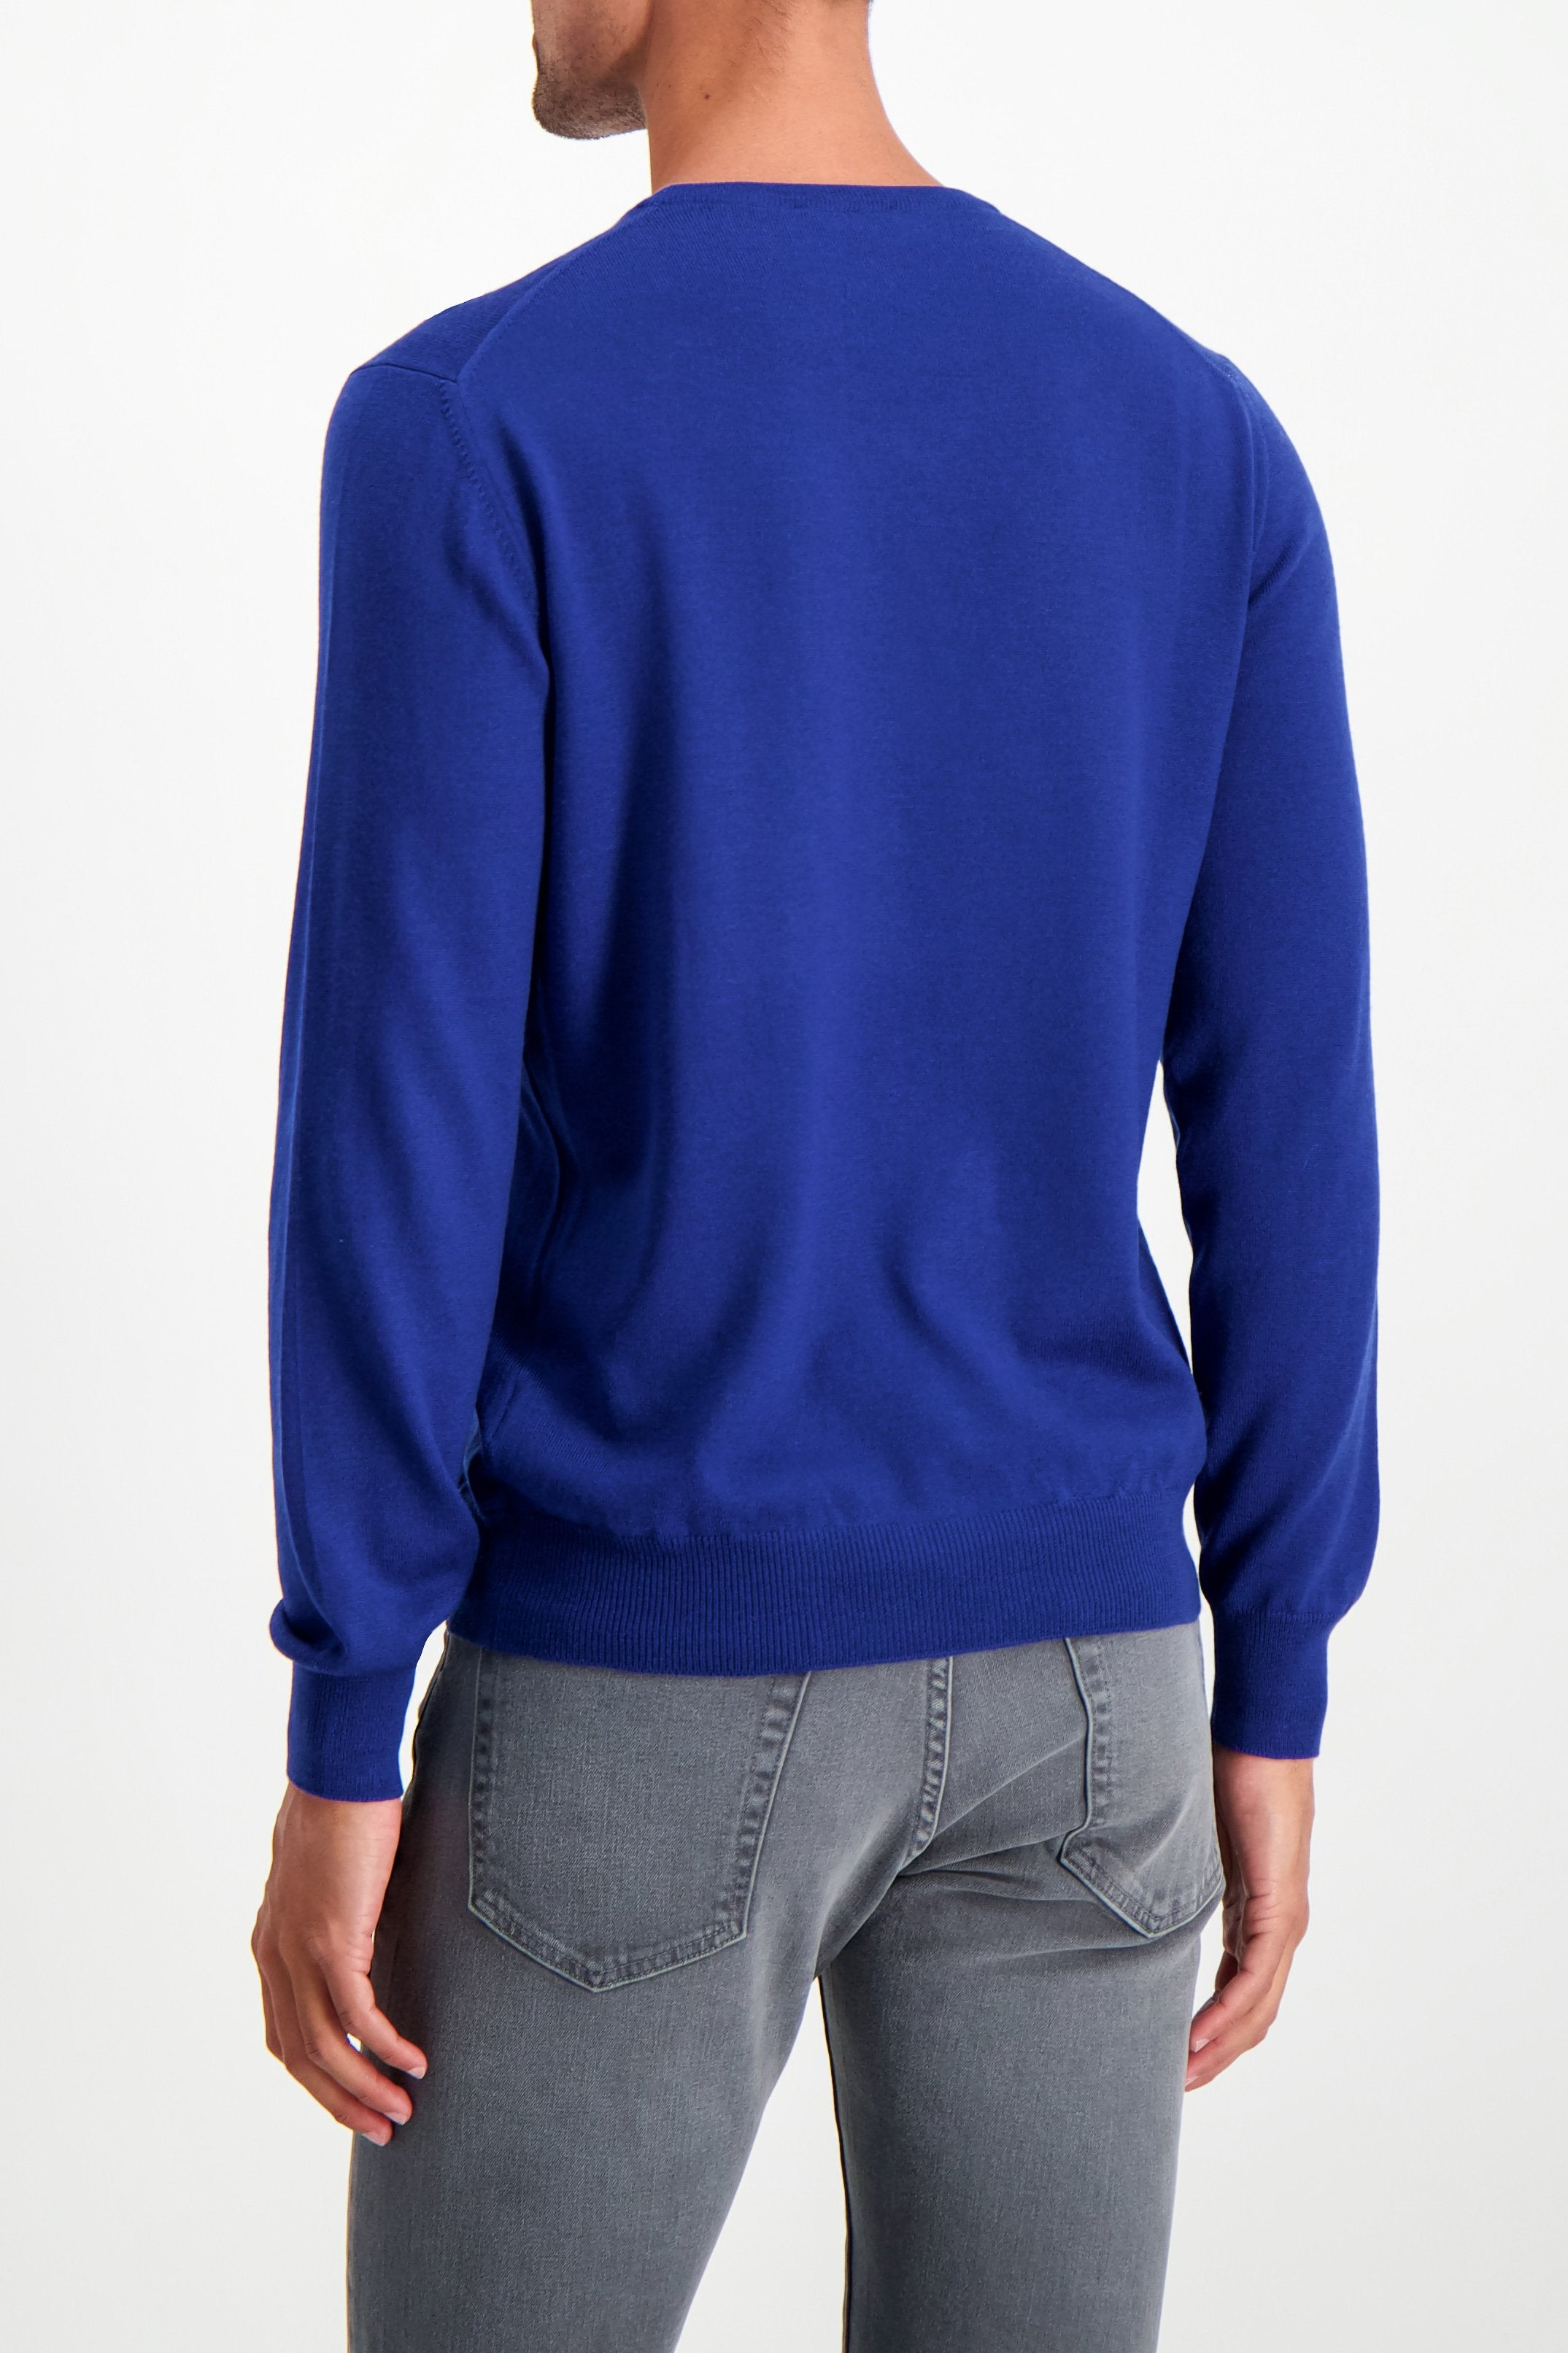 Back Crop Image Of Model Wearing Gran Sasso Men's Merino Crewneck Sweater Blue